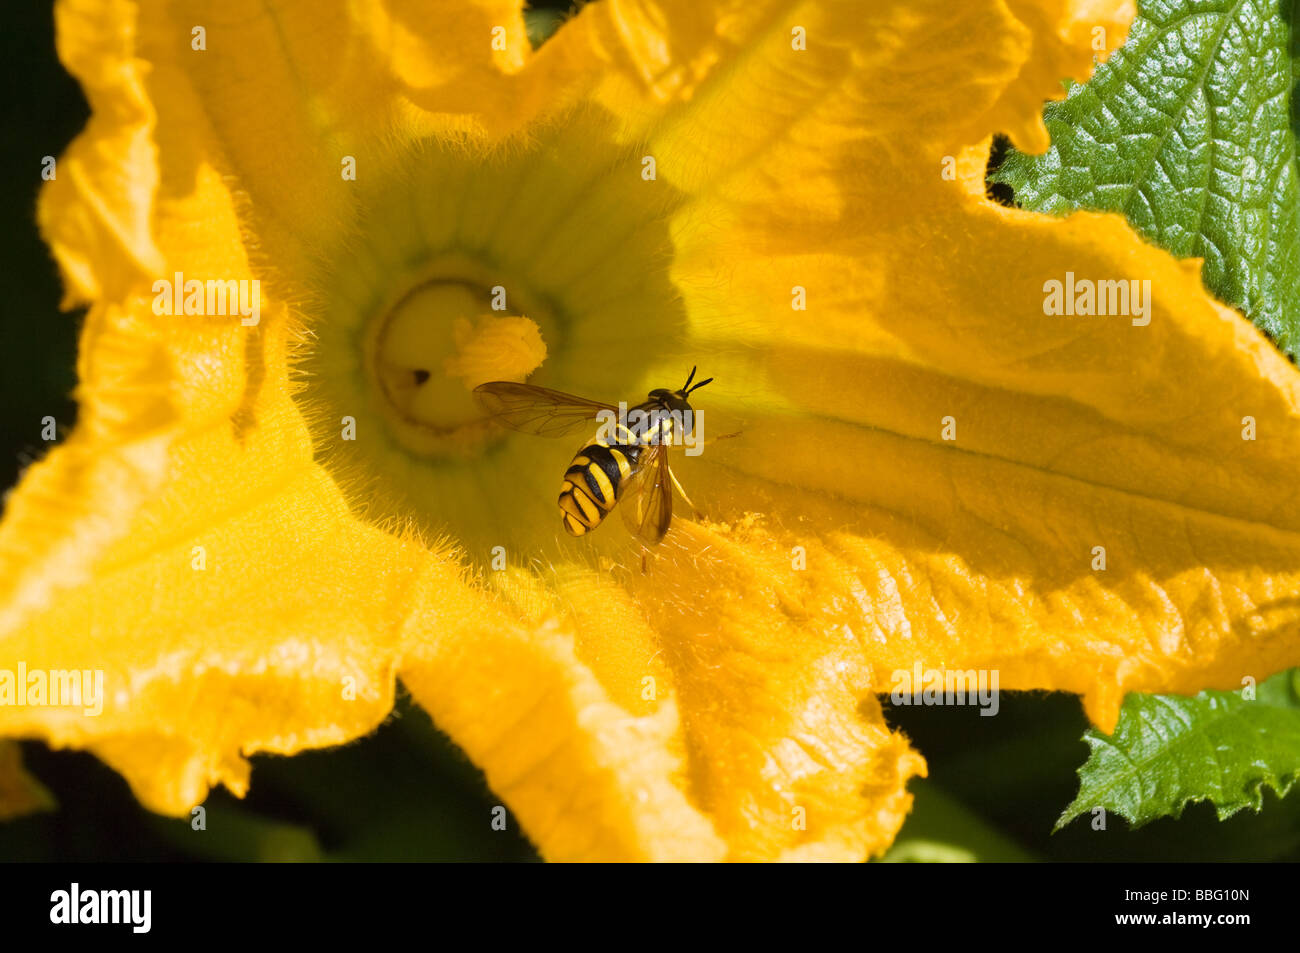 Hoverfly on a flower - Stock Image